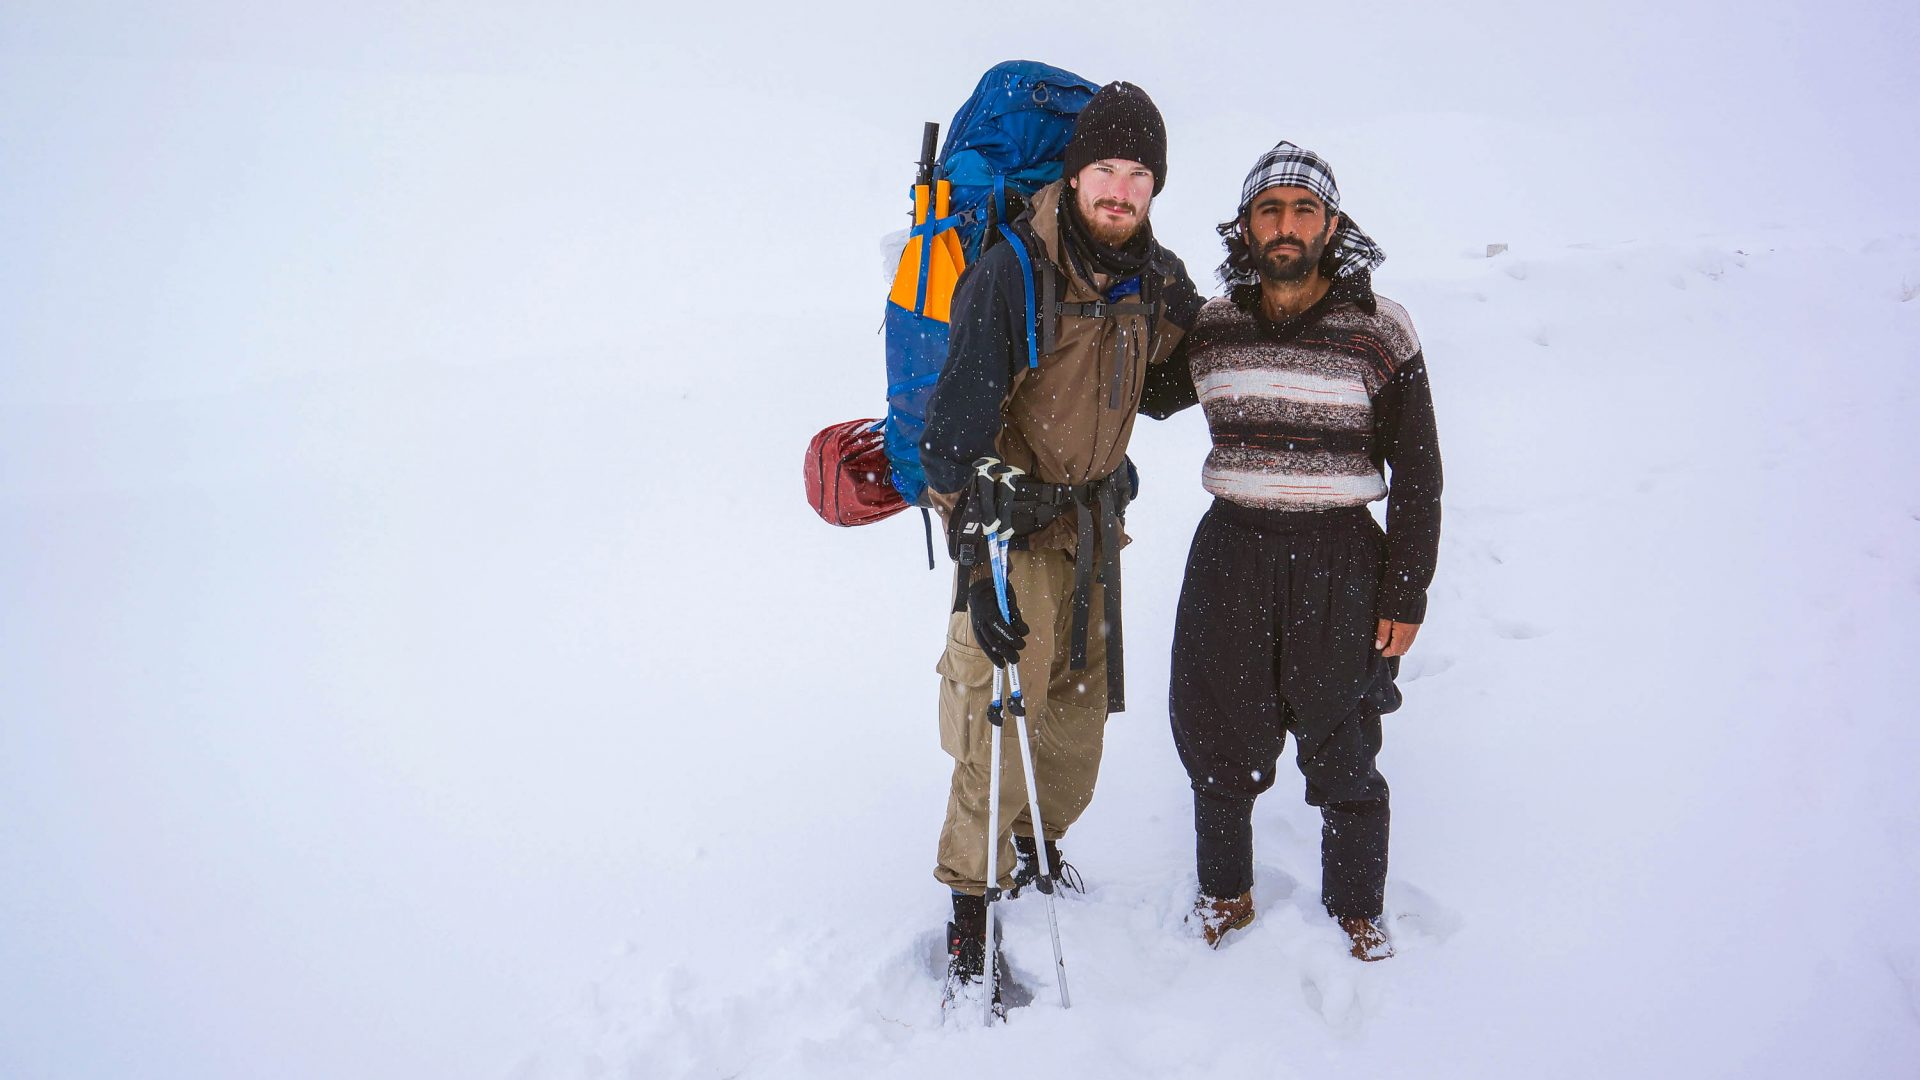 Leon and his Baktiari host (of the southwestern Iranian tribe) in the mountains.